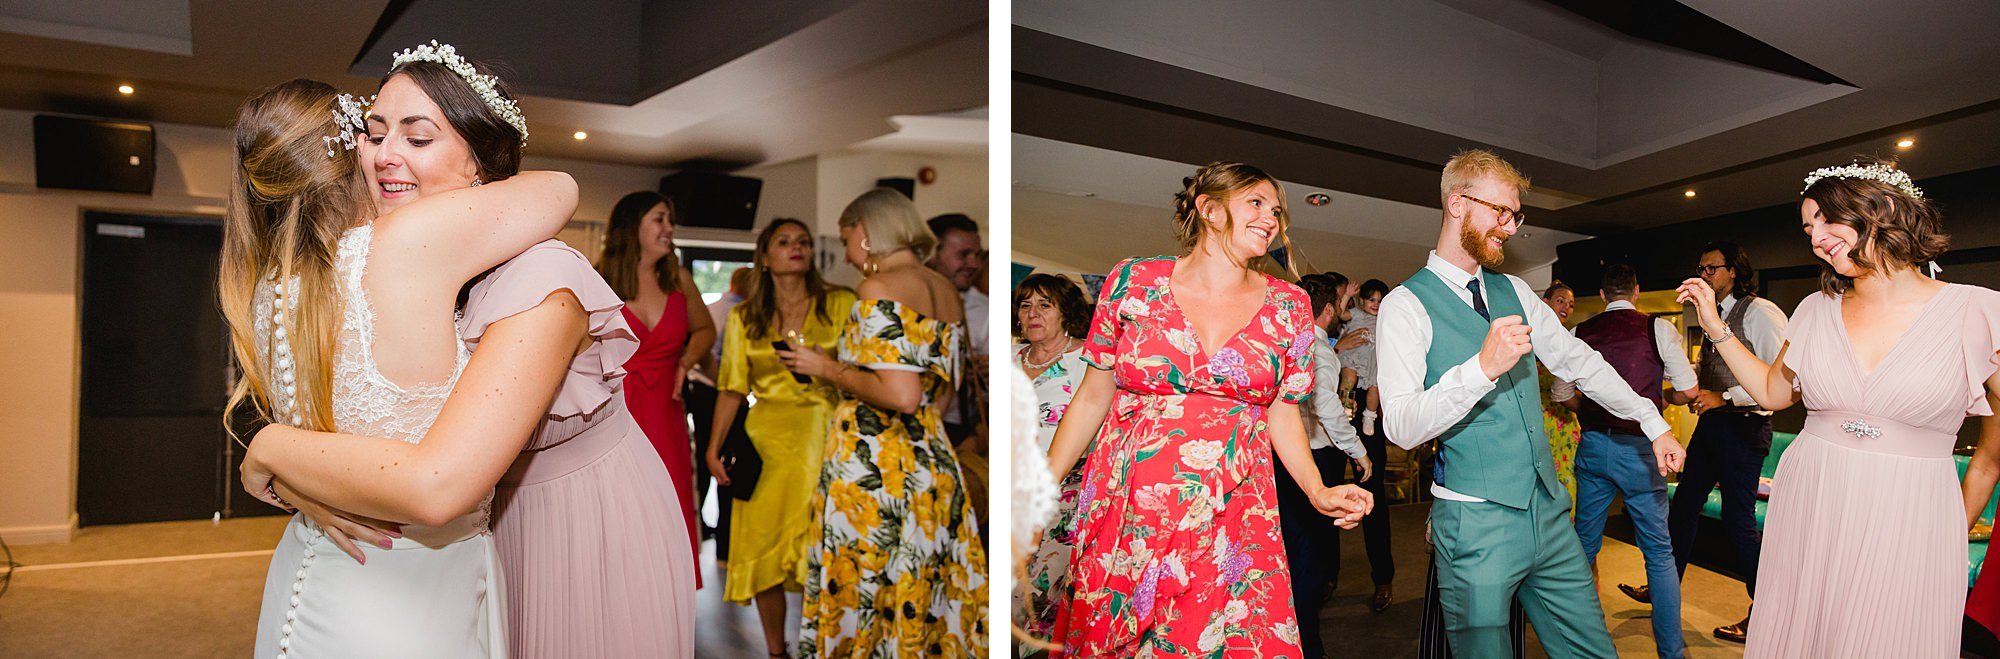 Writtle university college wedding guests dancing